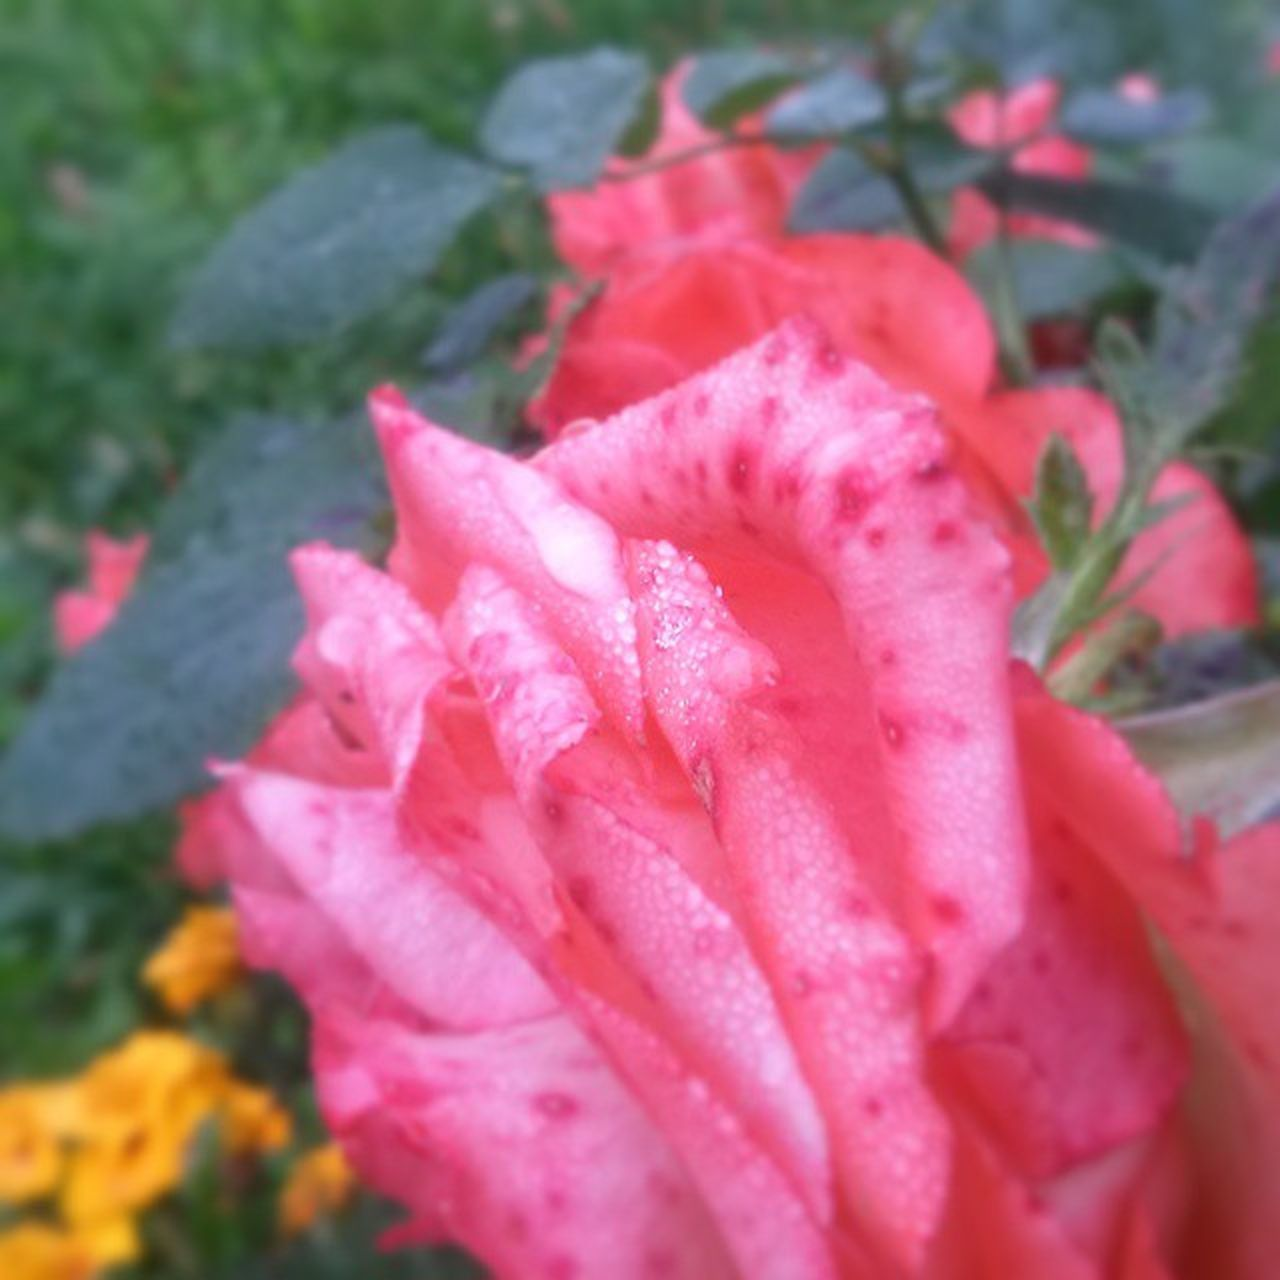 flower, petal, beauty in nature, nature, pink color, growth, fragility, drop, plant, flower head, freshness, water, no people, close-up, wet, rose - flower, outdoors, raindrop, day, blooming